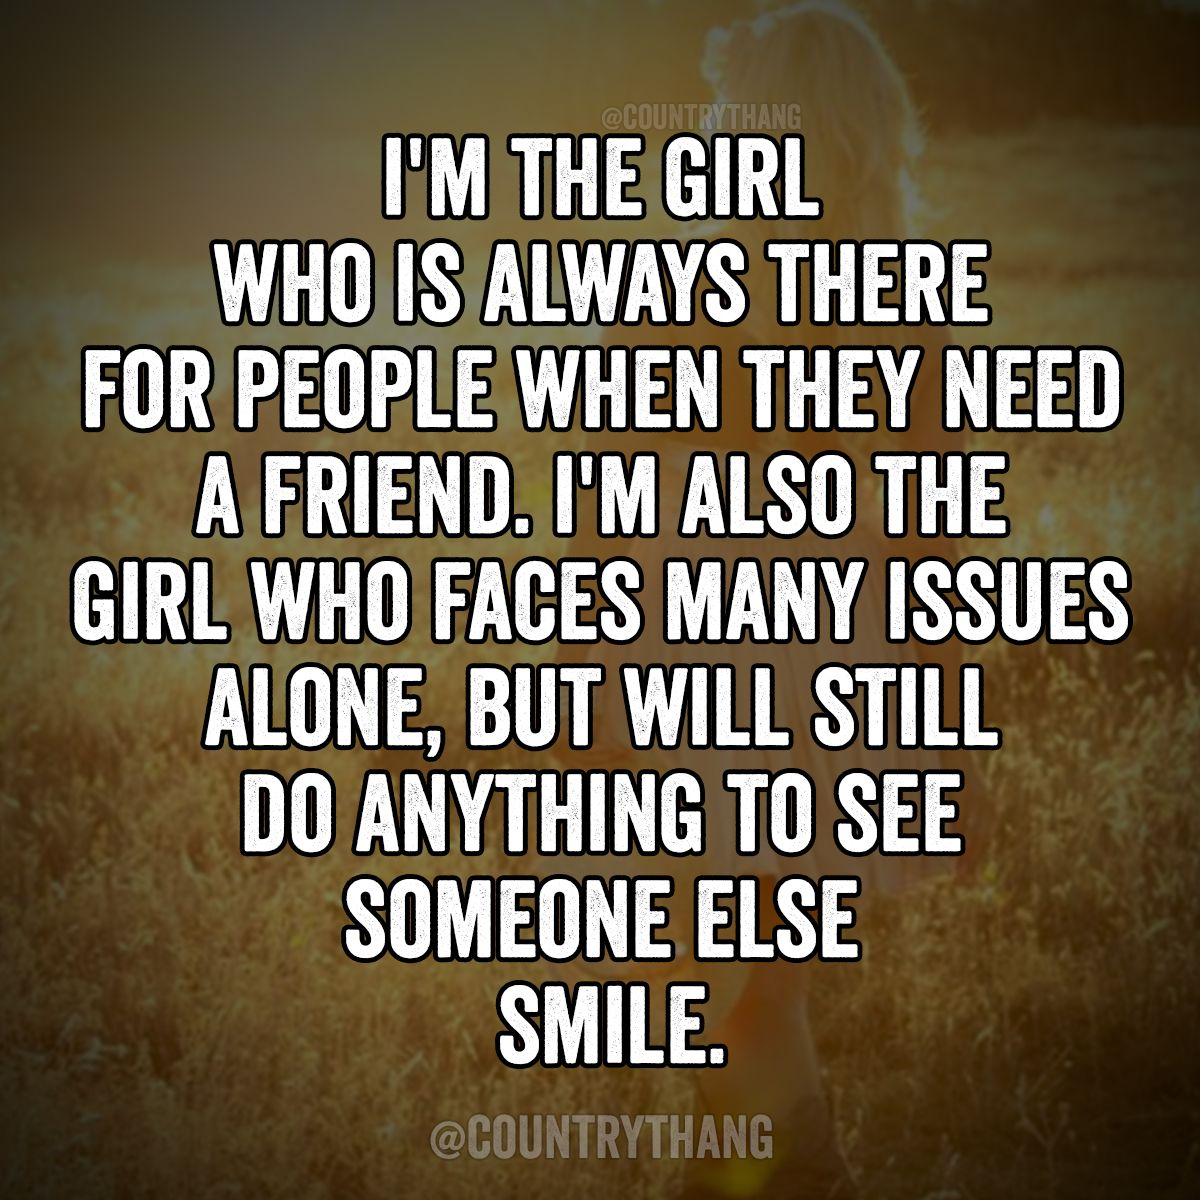 I m the girl who is always there for people when they need a friend I m also the girl who faces many issues alone but will still do anything to see someone